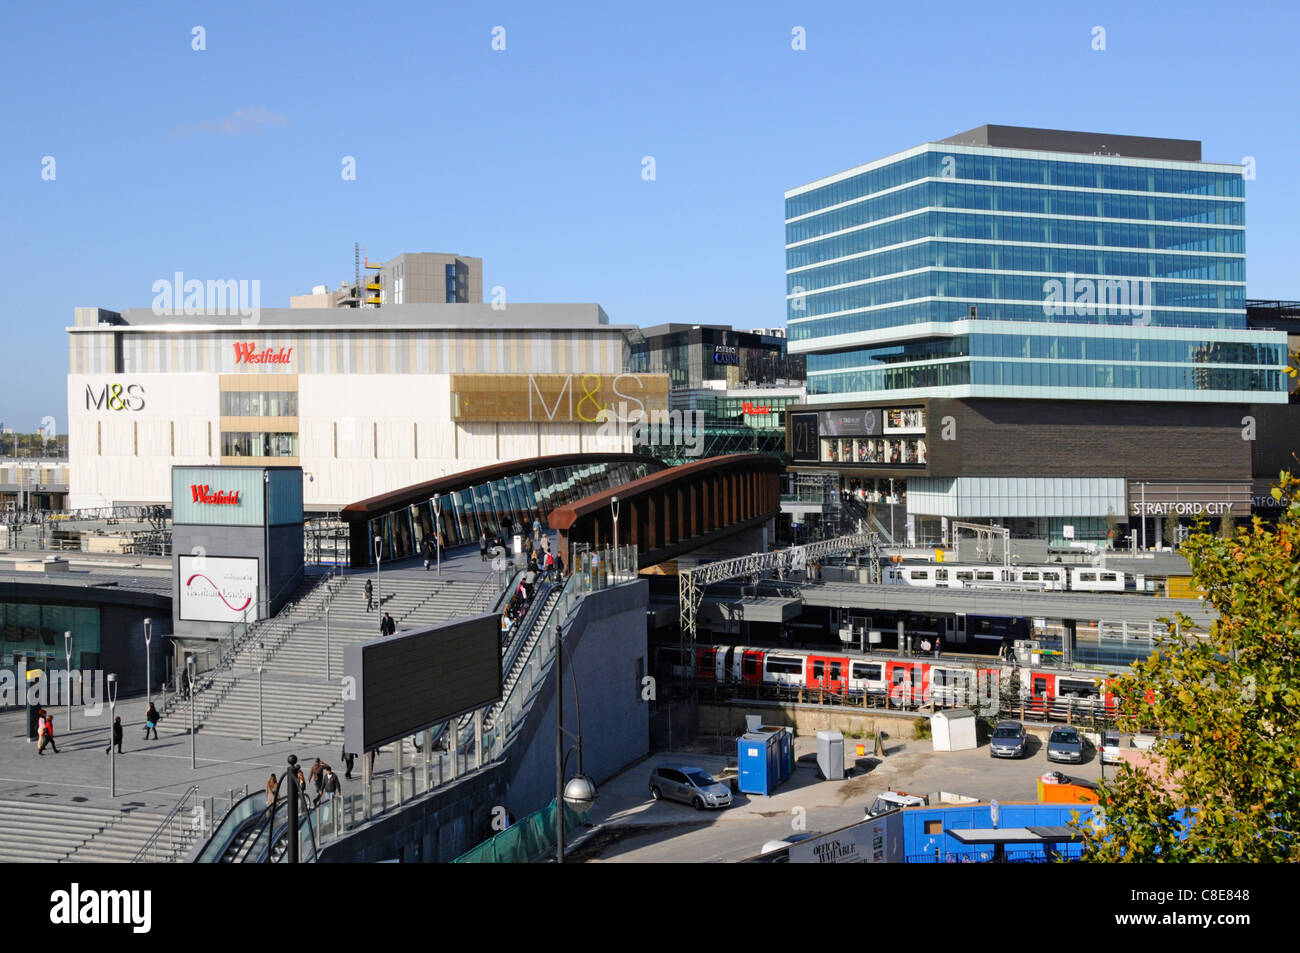 Marks & Spencer store & Stratford City Westfield shopping centre with access bridge over Stratford station - Stock Image